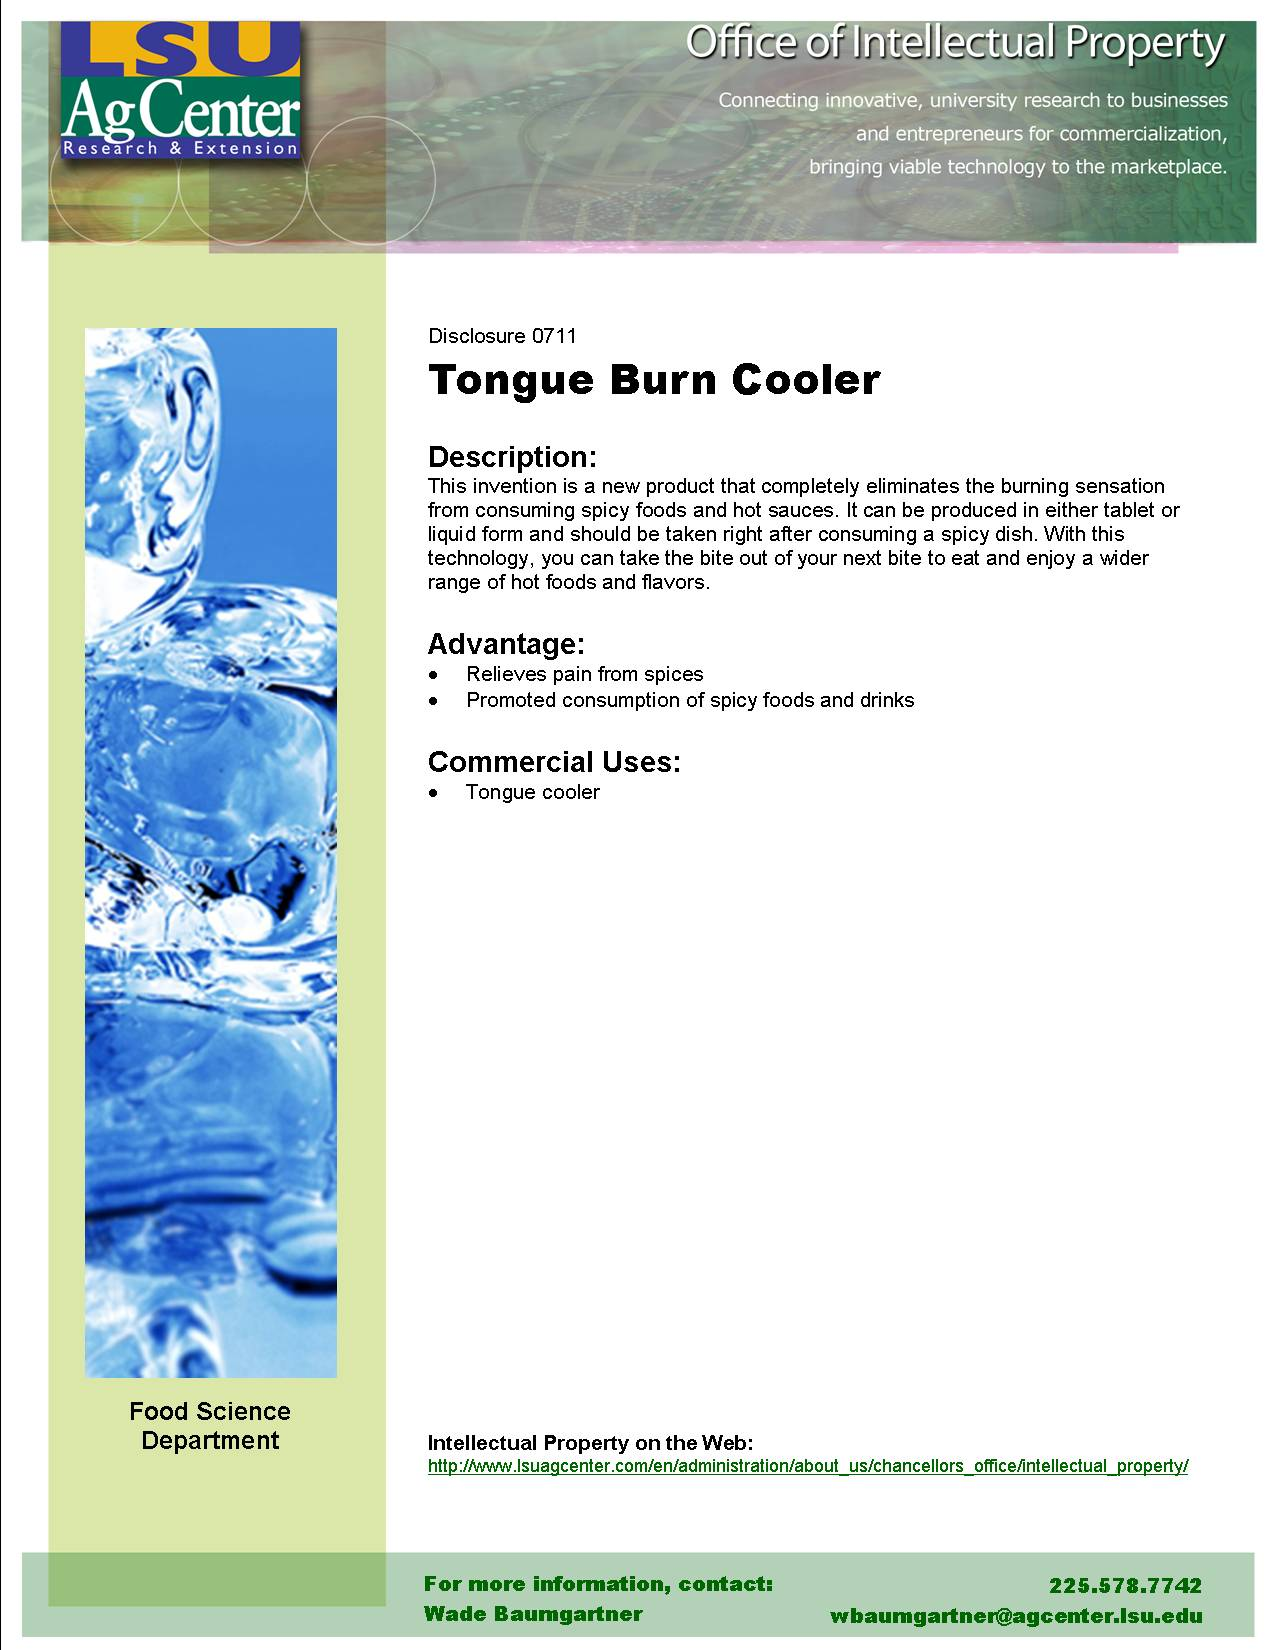 Tongue Burn Cooler